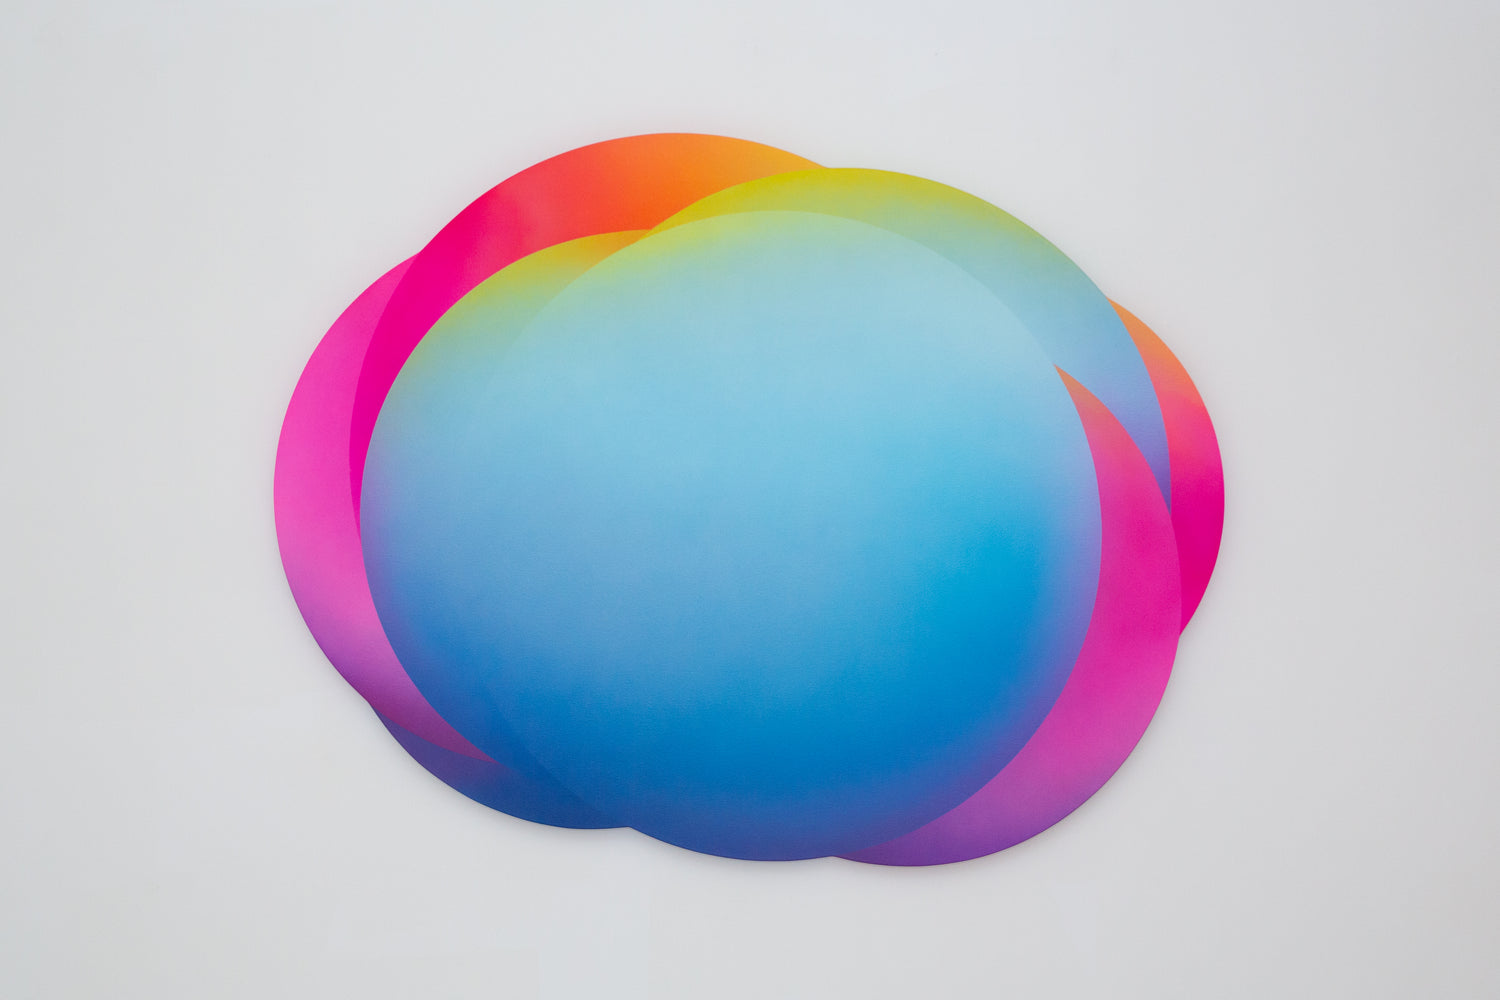 Jan Kálab: Blue Rainbow Cloud 0128pm, 2018